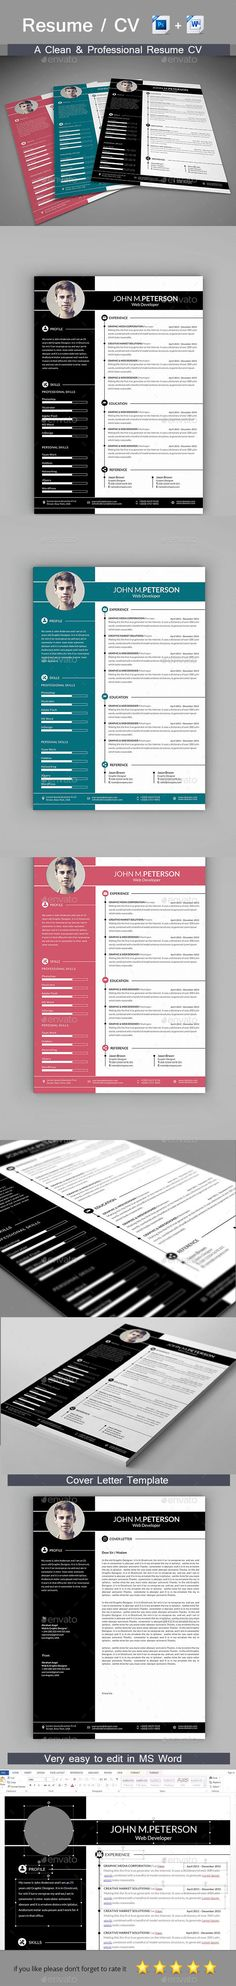 Simple Resume Template, Resume Design Template, Resume Templates, Graphic Design Cv, Infographic Resume, Le Cv, Presentation Design Template, Job Resume, Cover Letter For Resume